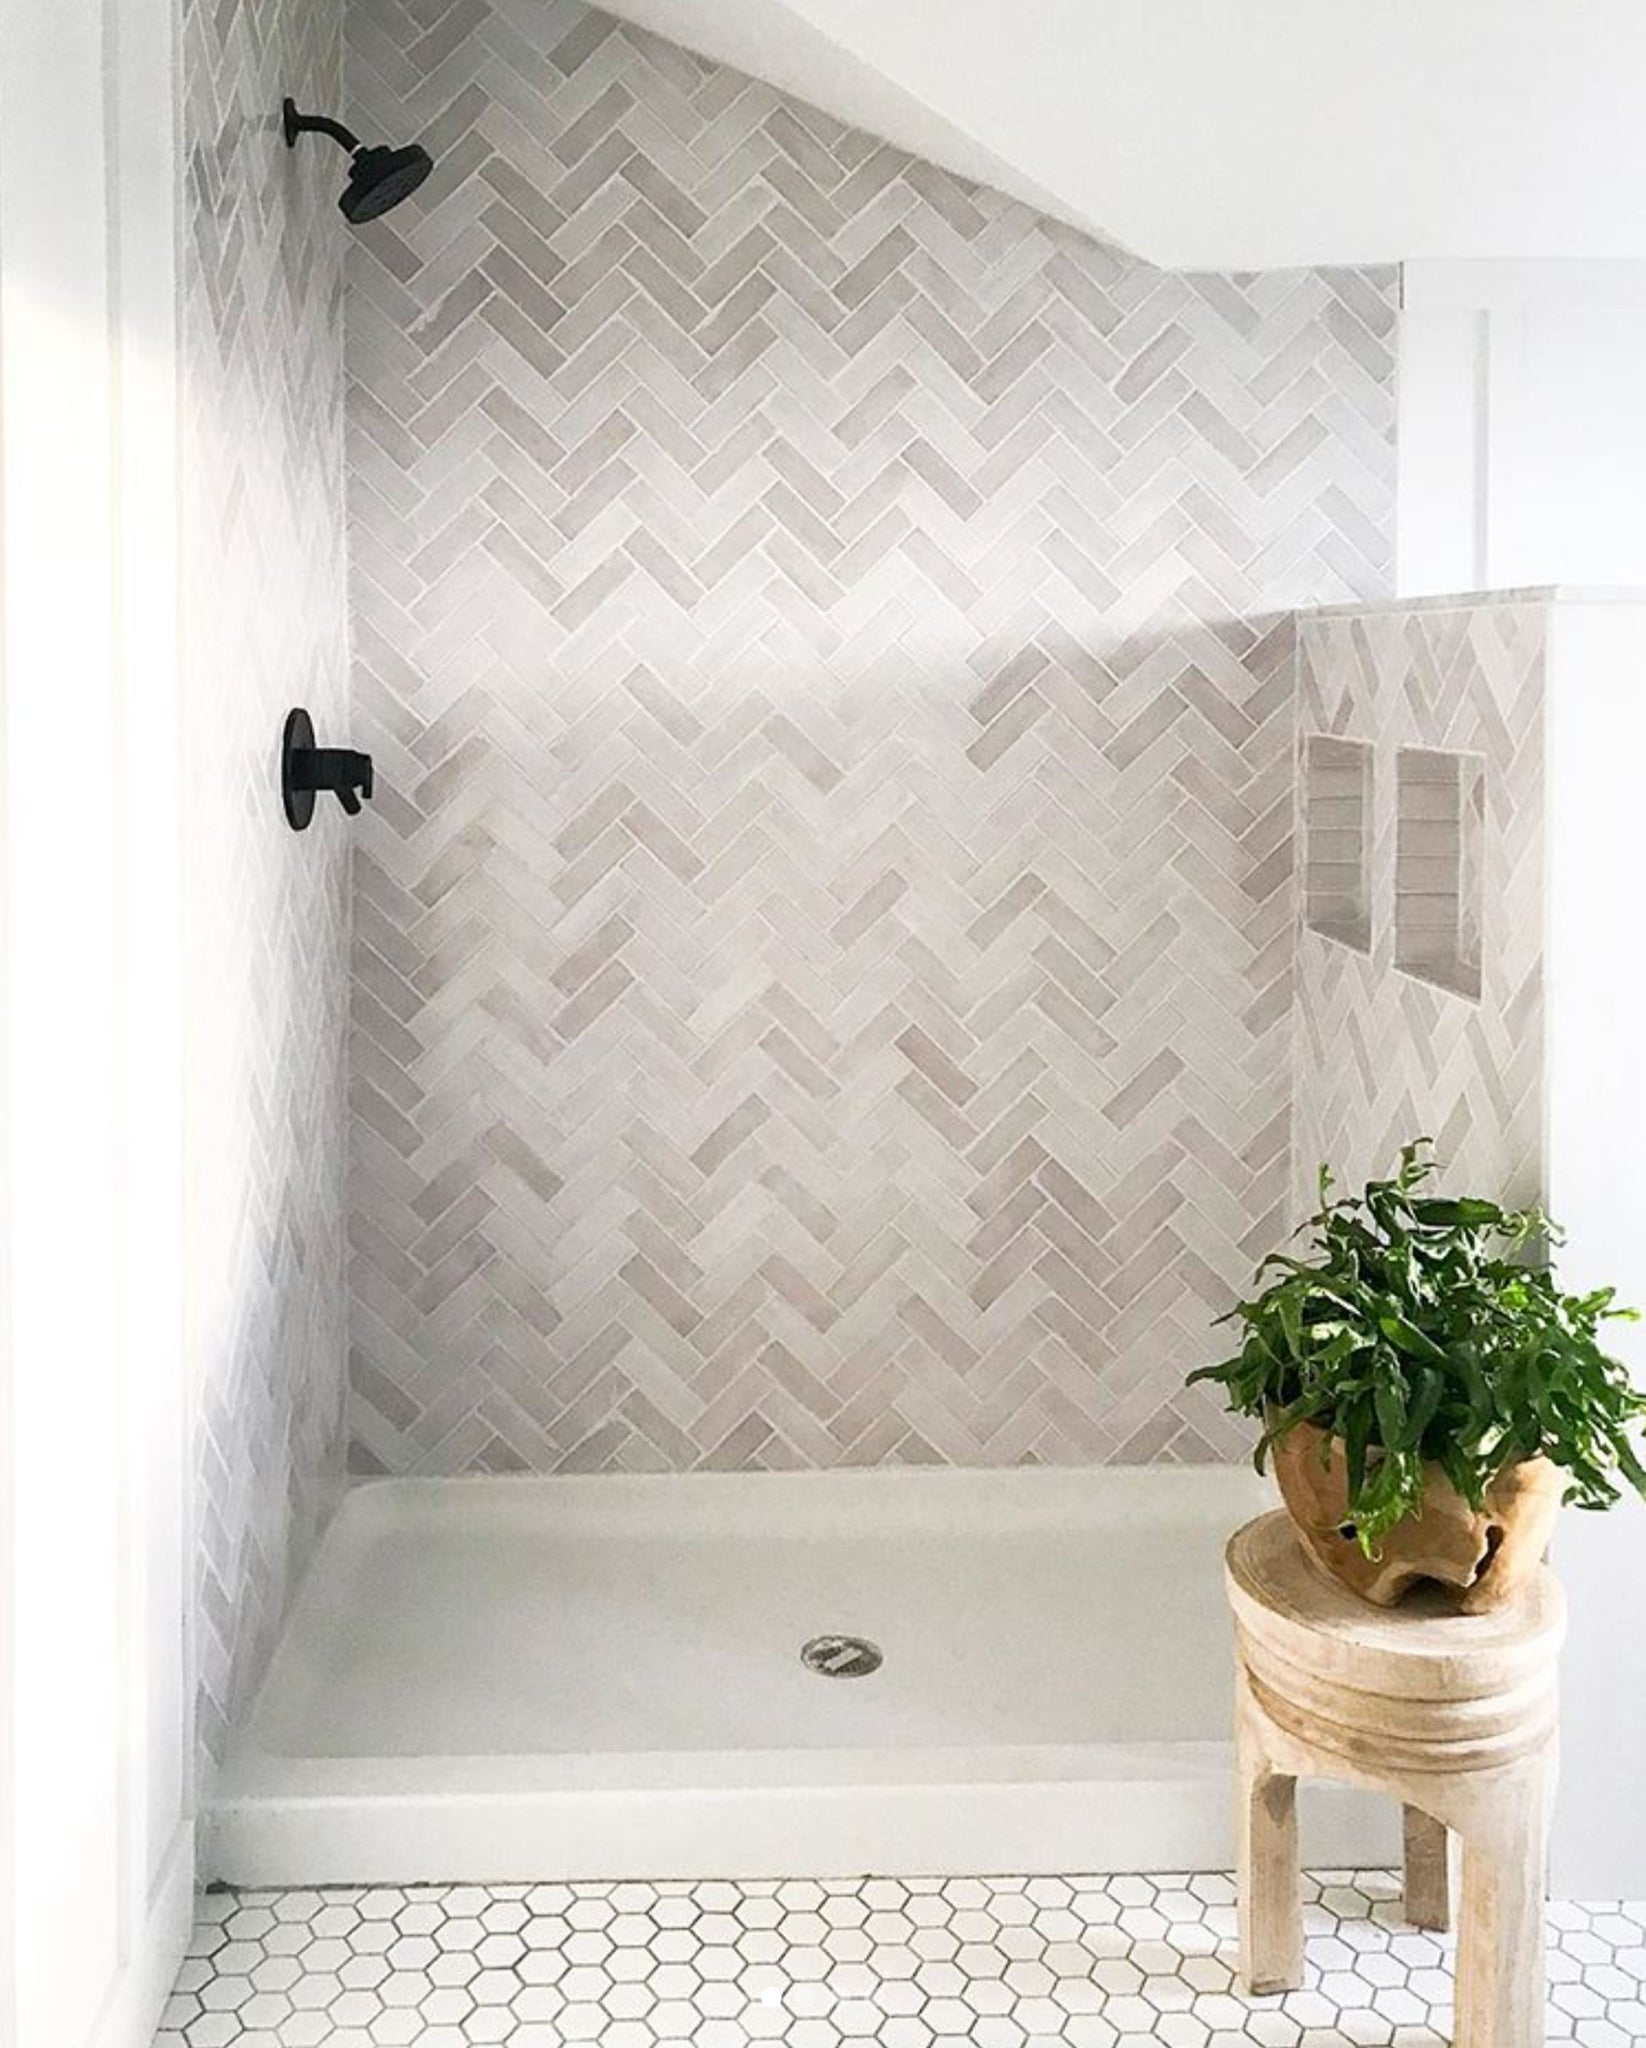 White Herringbone Tile Bathroom